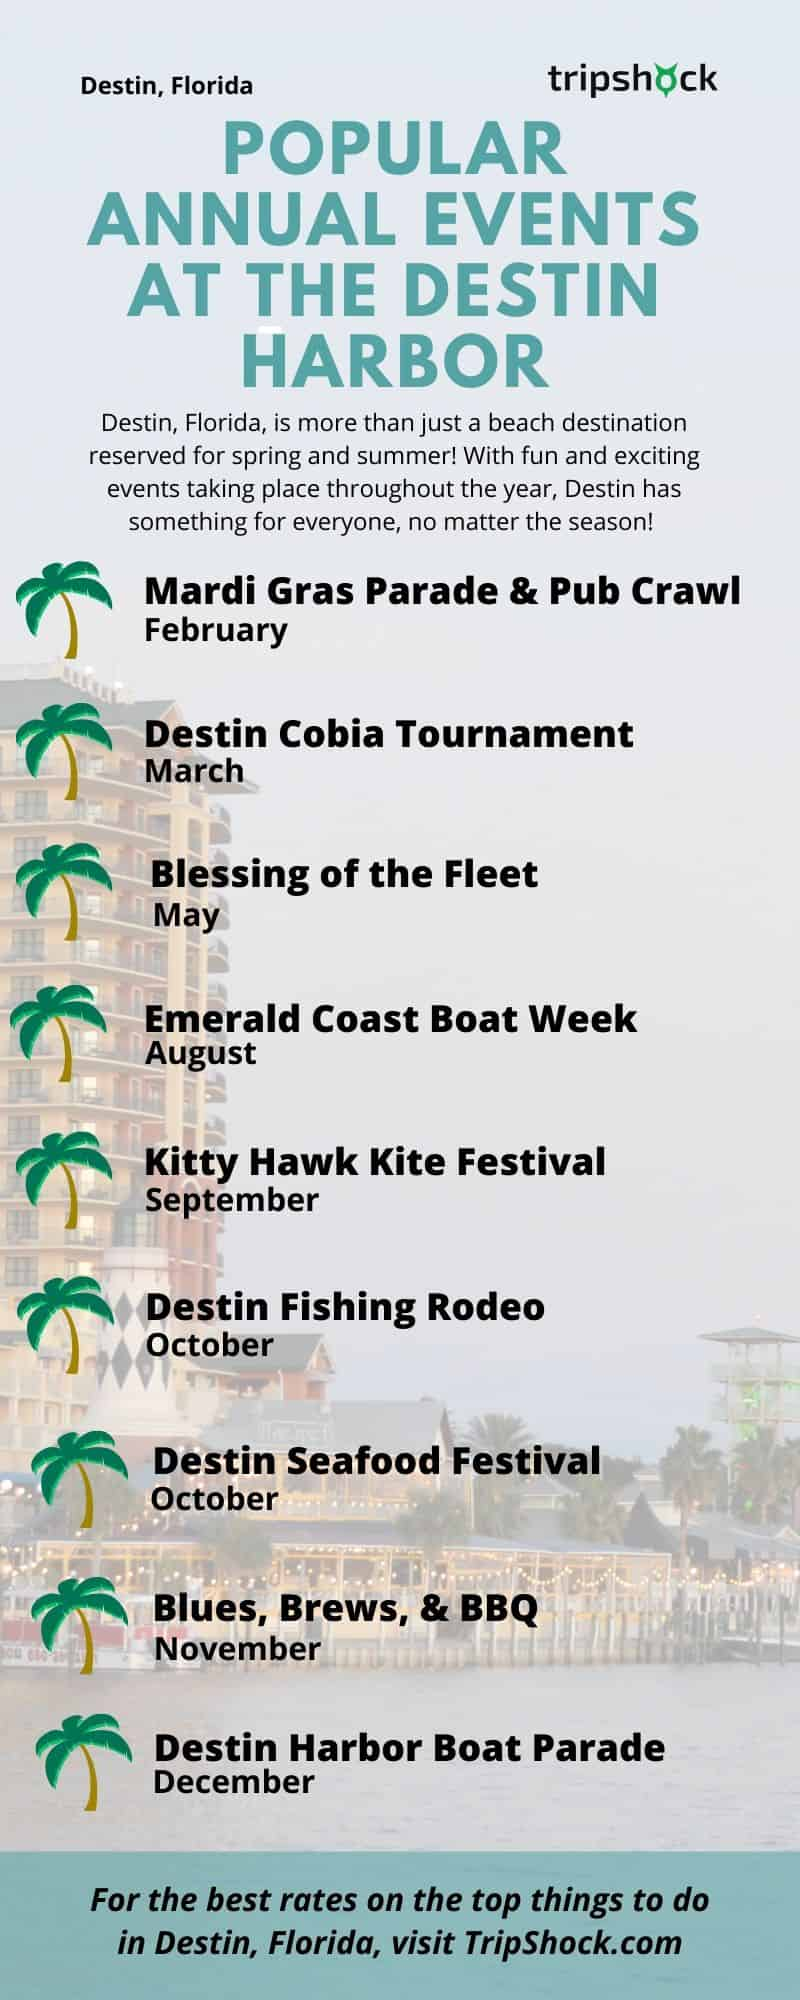 Popular Annual Events at the Destin Harbor